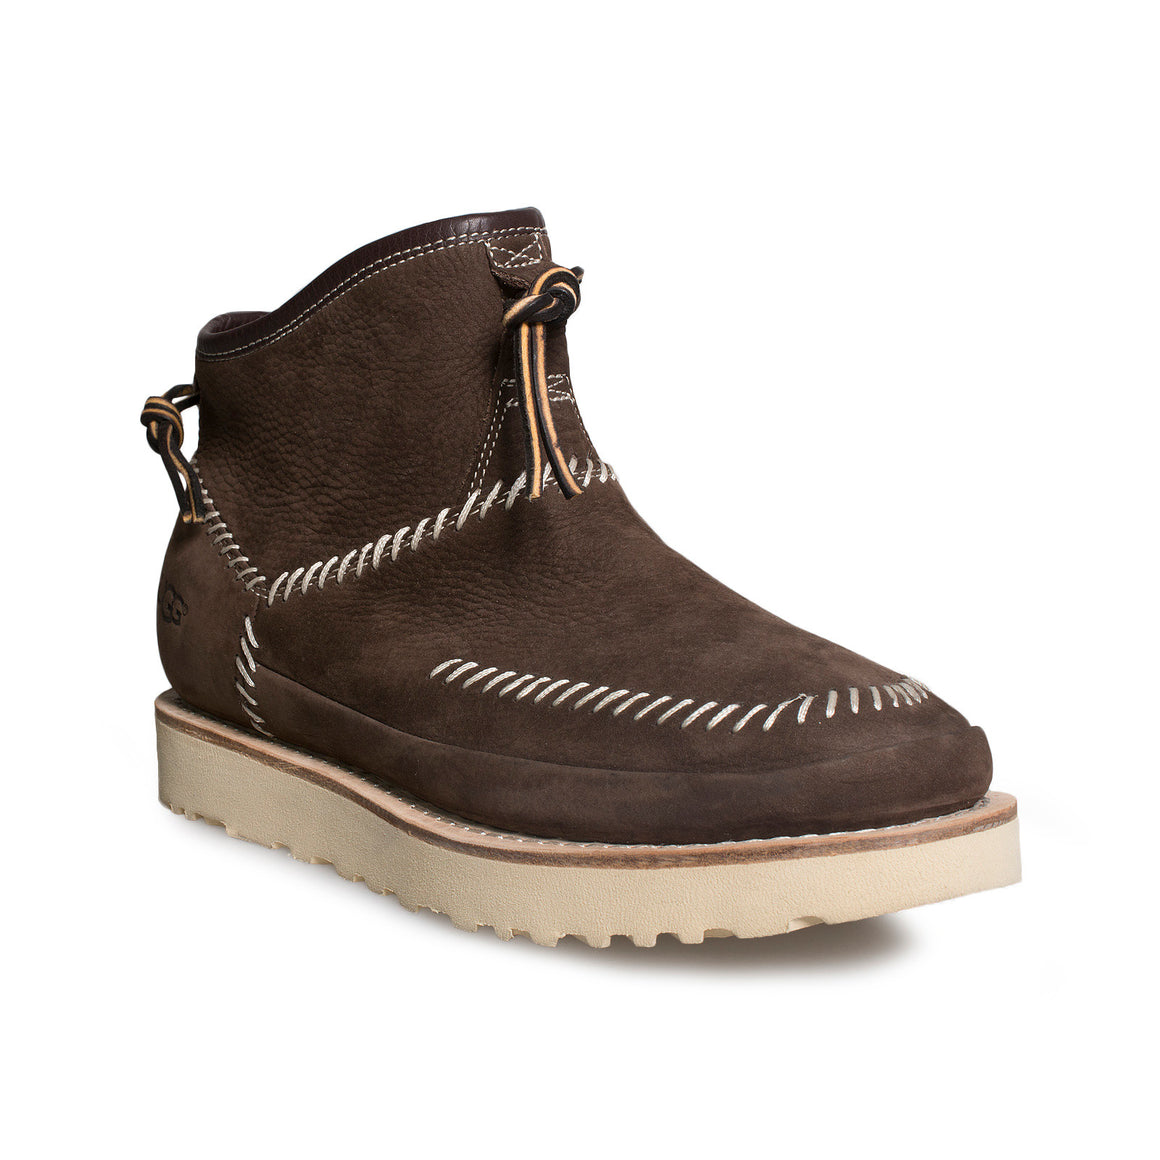 UGG Campfire Pull On Stout Boots - Men's